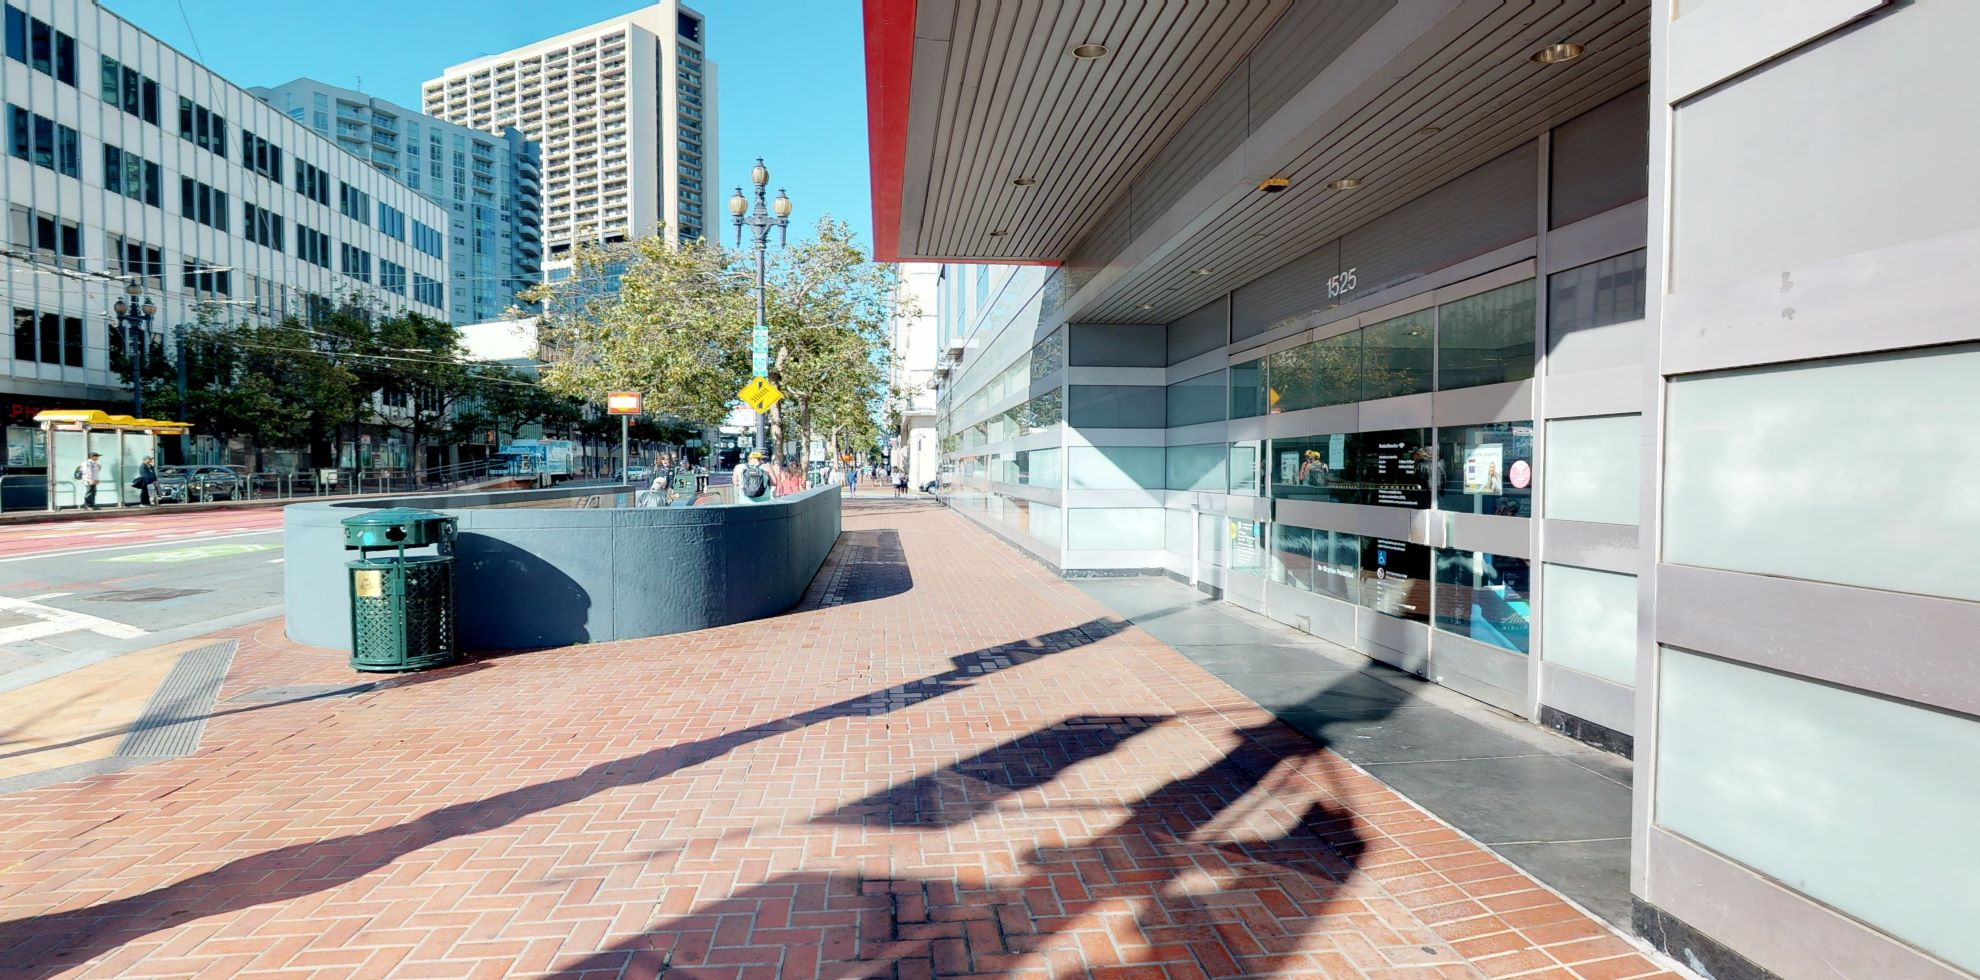 Bank of America financial center with walk-up ATM | 1525 Market St, San Francisco, CA 94103